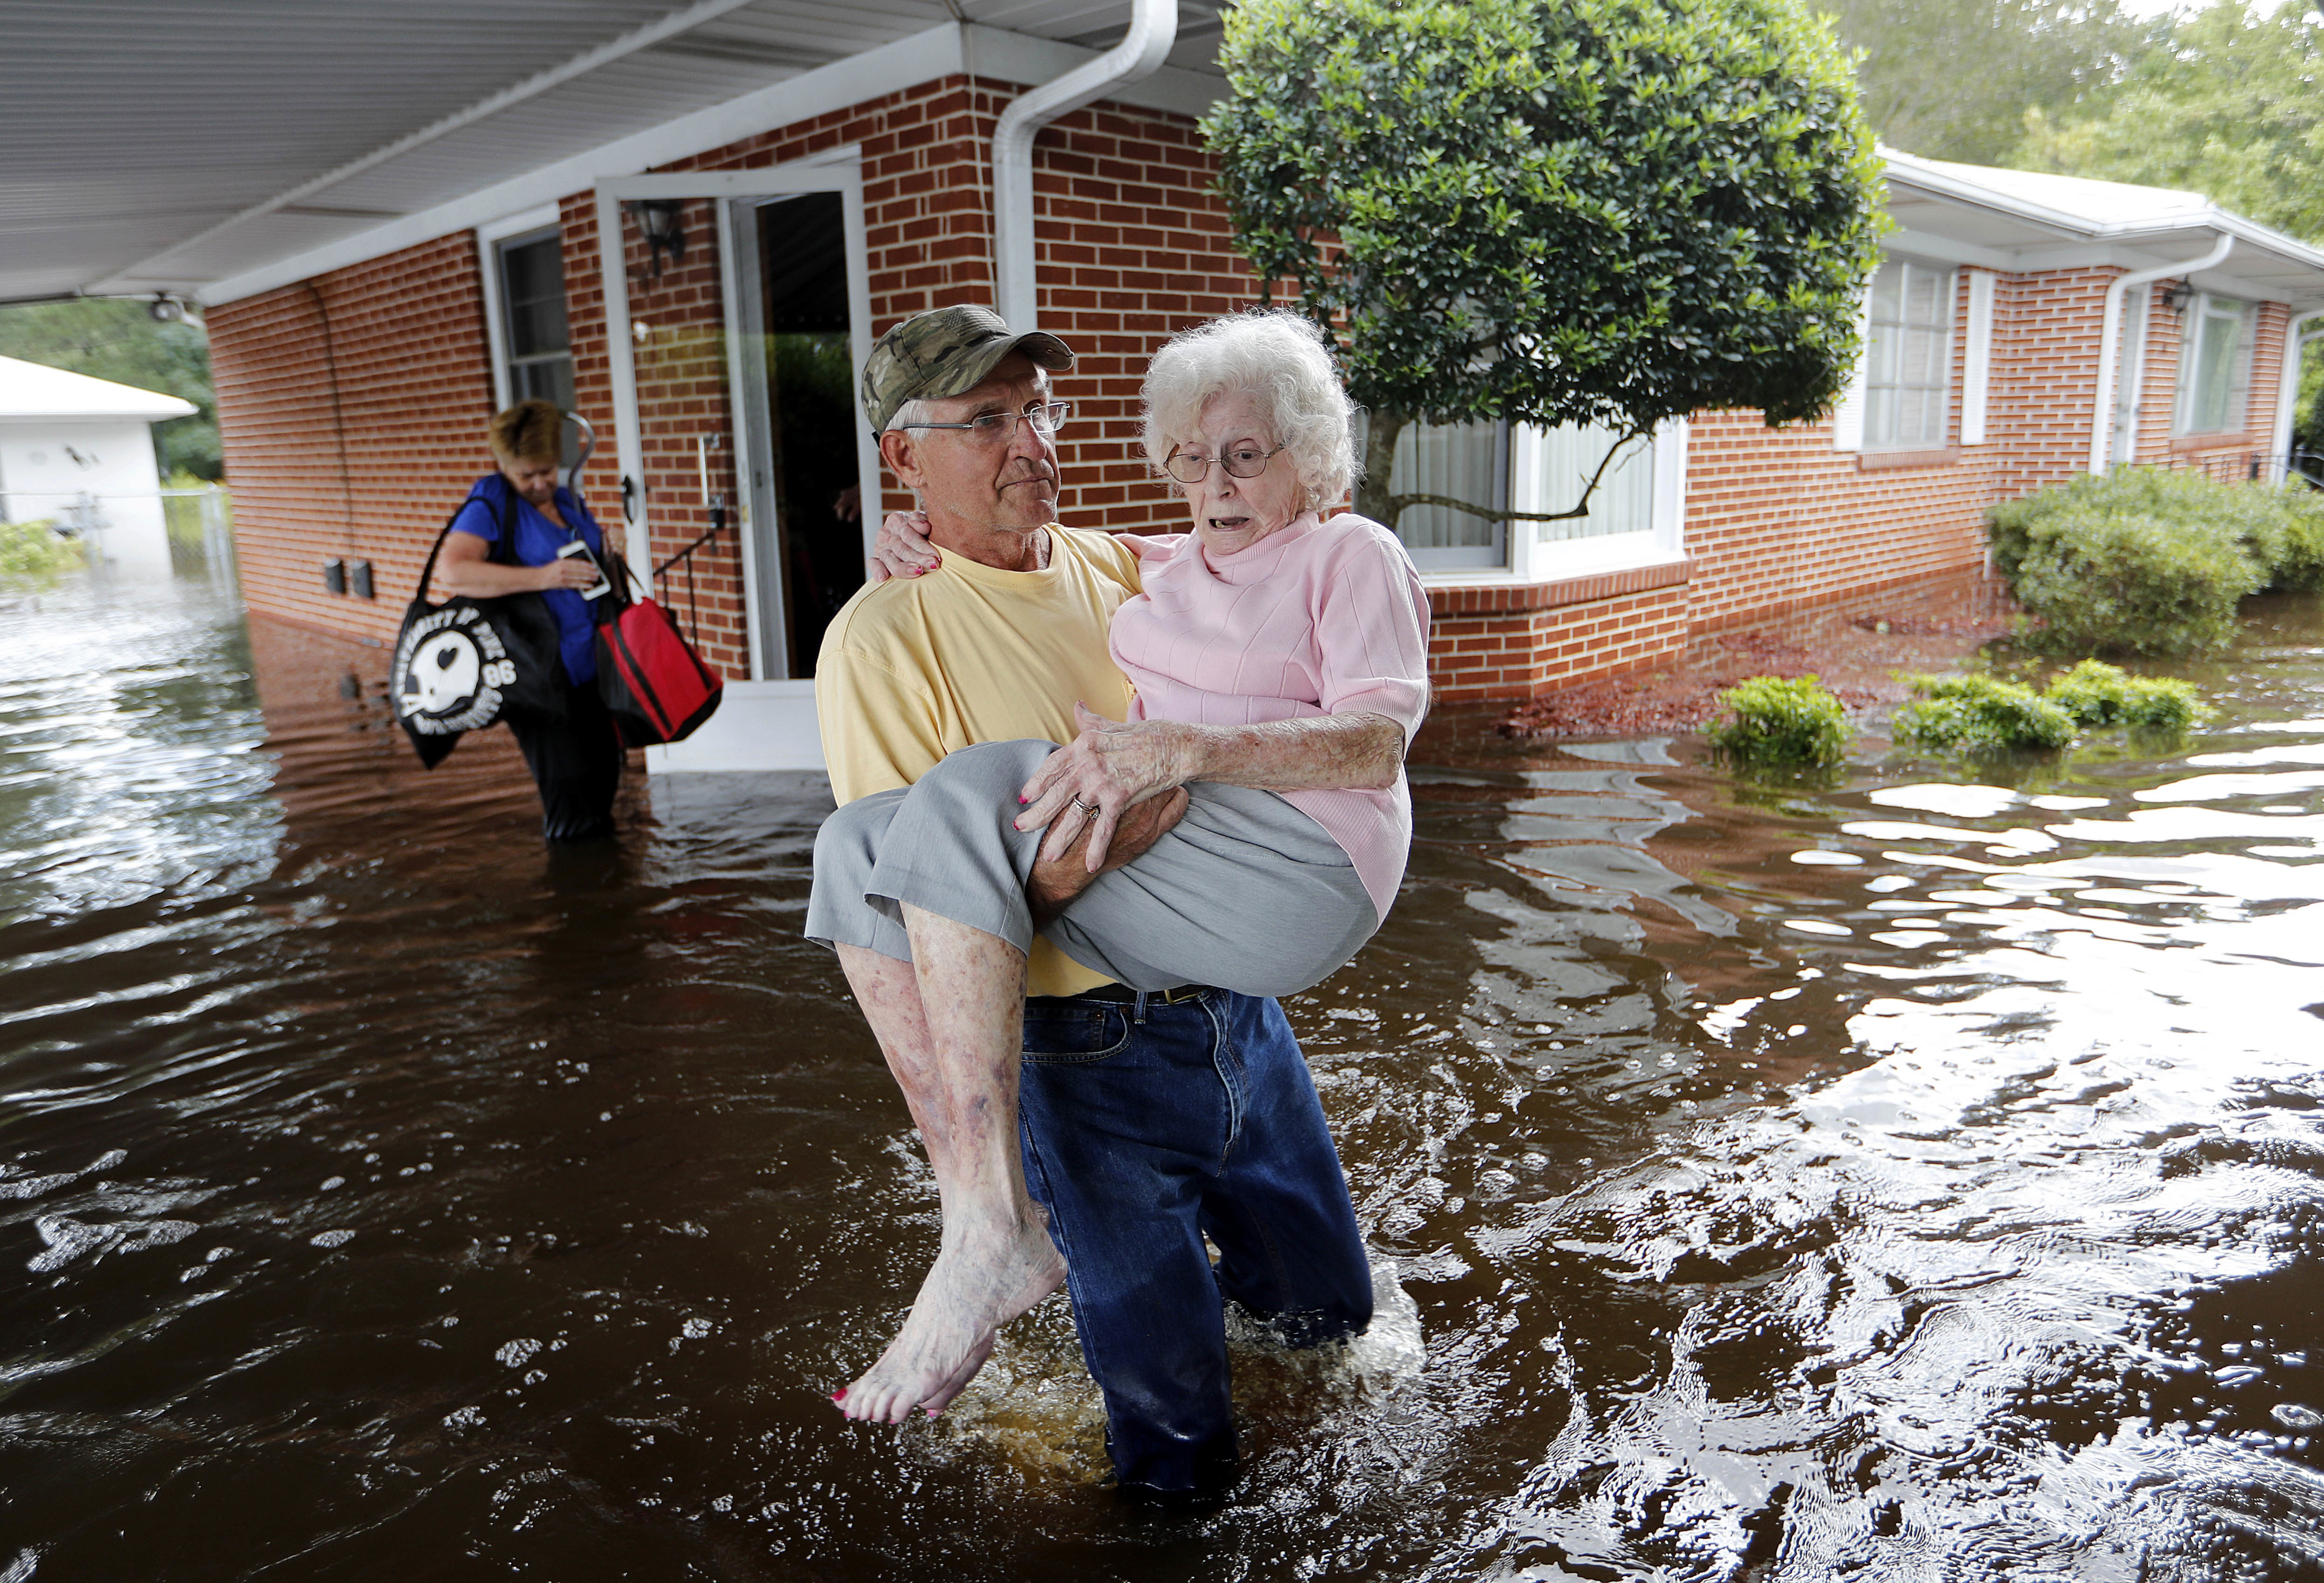 Bob Richling carries Iris Darden, 84, out of her flooded home as her daughter-in-law, Pam Darden, gathers her belongings in the aftermath of Hurricane Florence in Spring Lake, North Carolina, Sept. 17, 2018.